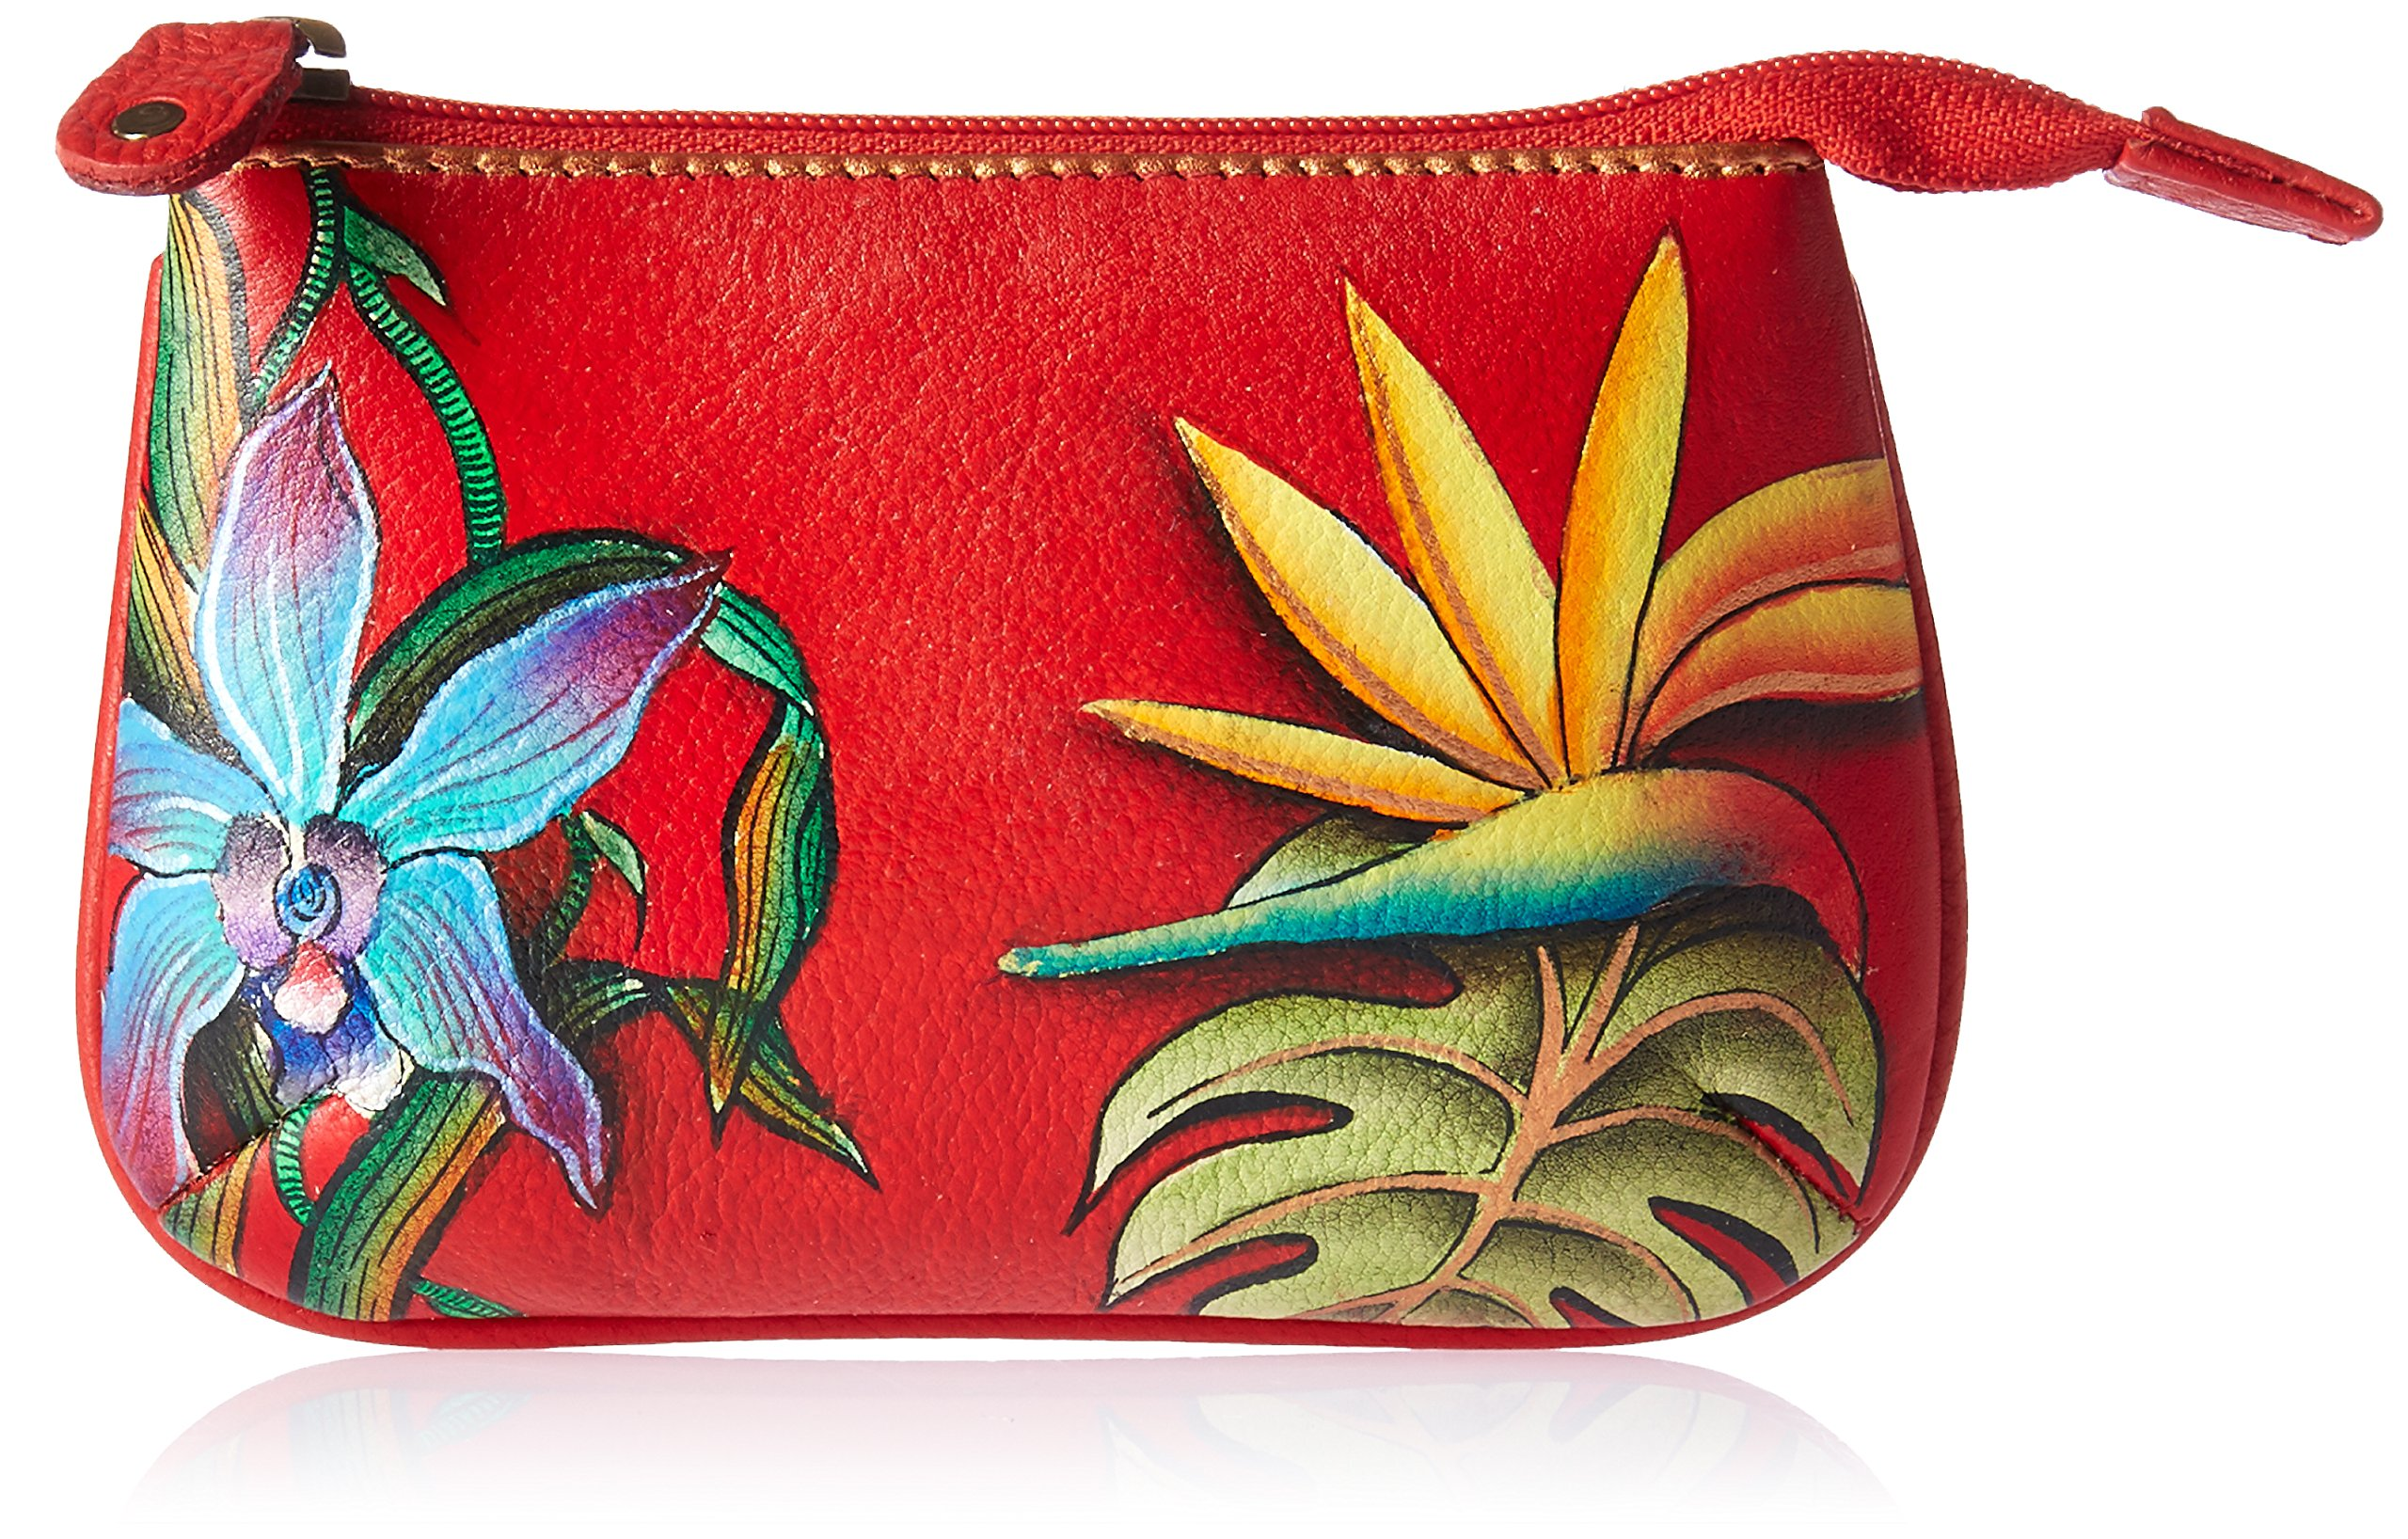 Anuschka Women's Handpainted Leather Medium Coin Purse-Island Escape, One Size